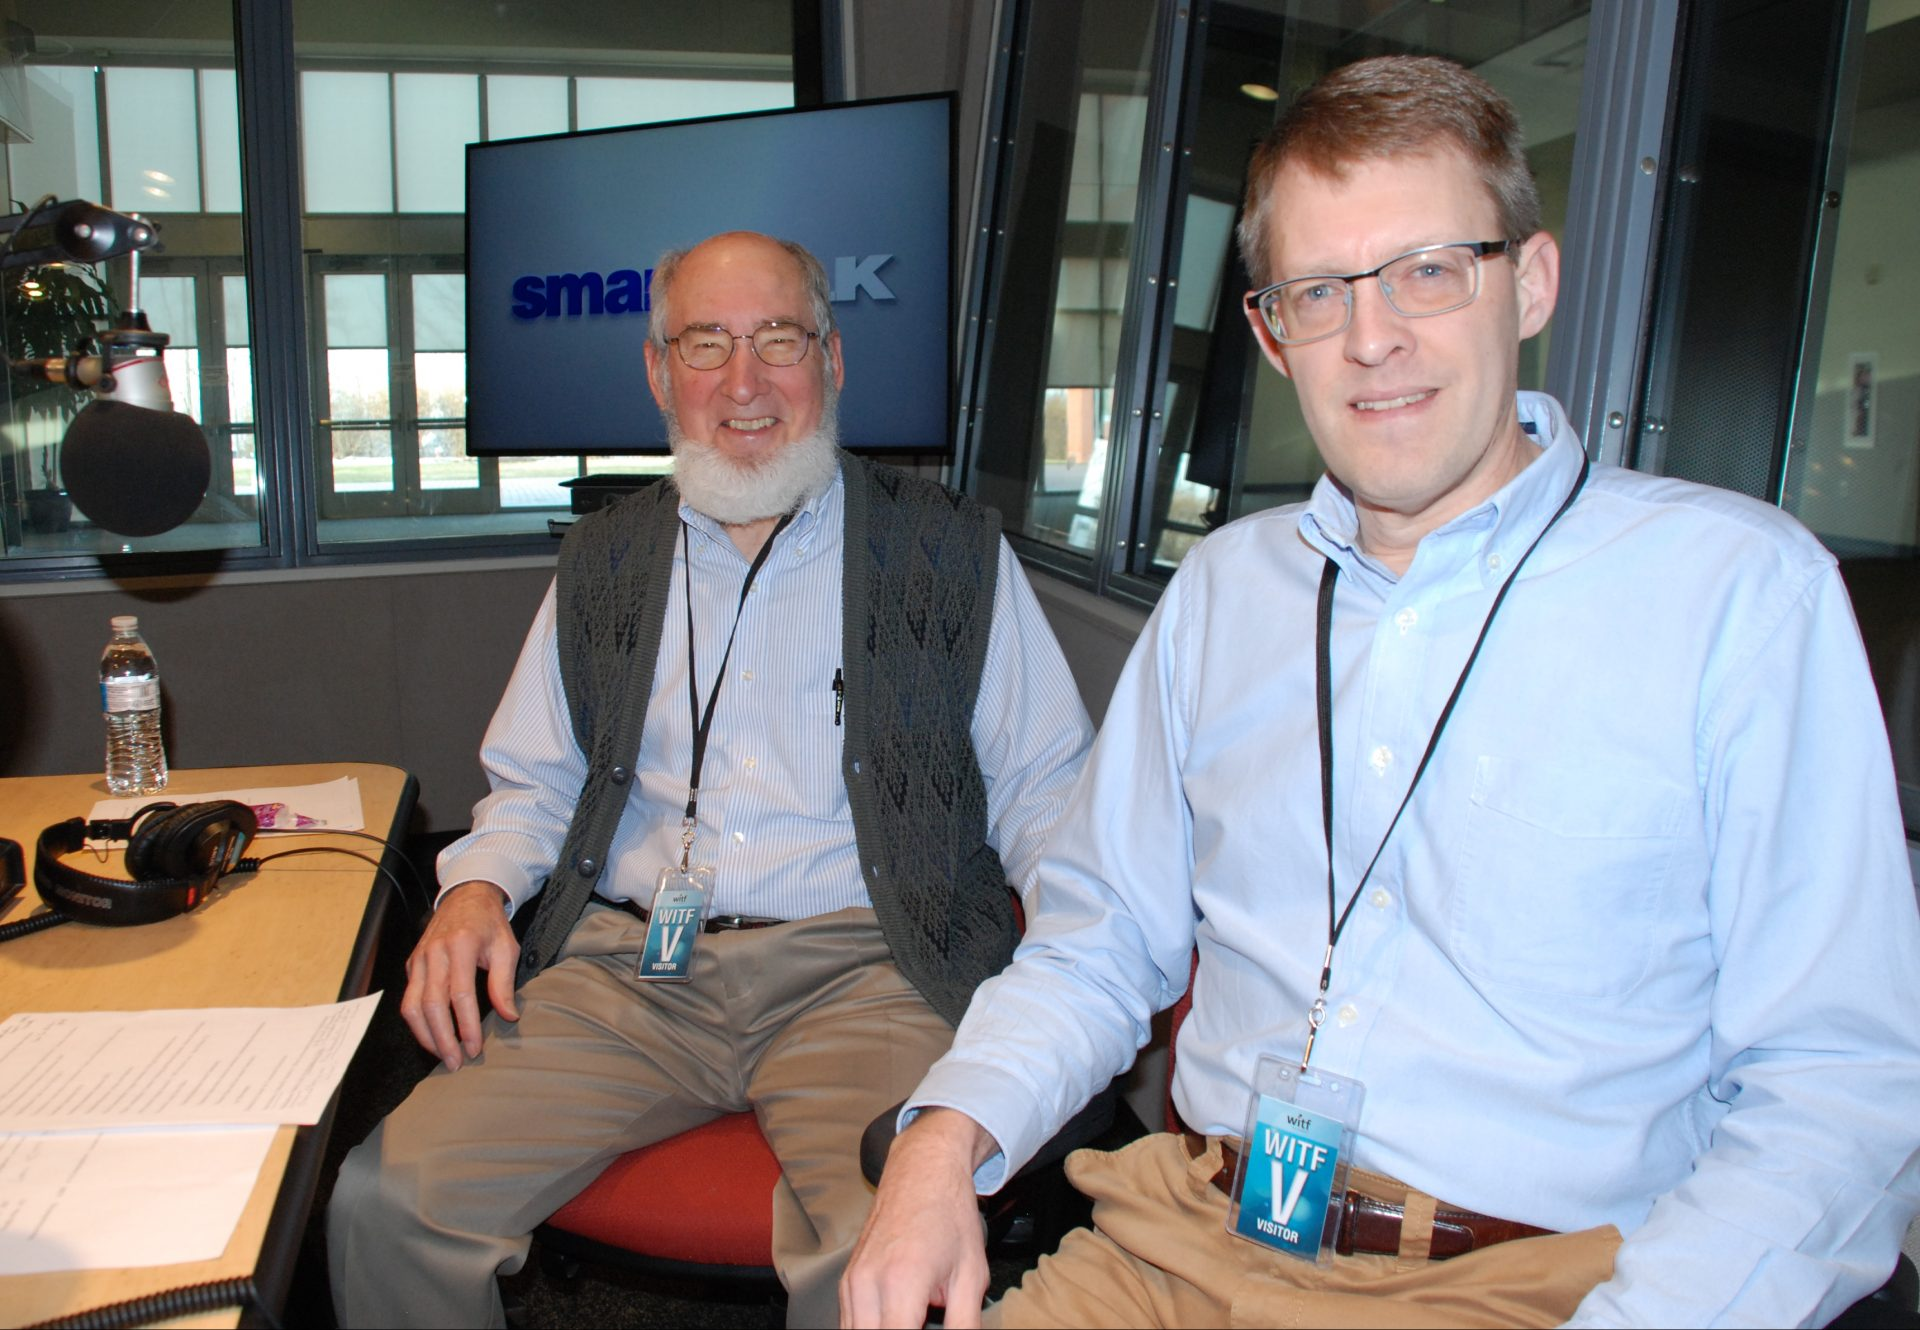 Professor Emeritus Donald Kraybill, Ph.D., and Prof. Steven Nolt, Ph.D., appear on Smart Talk on January 23, 2020.